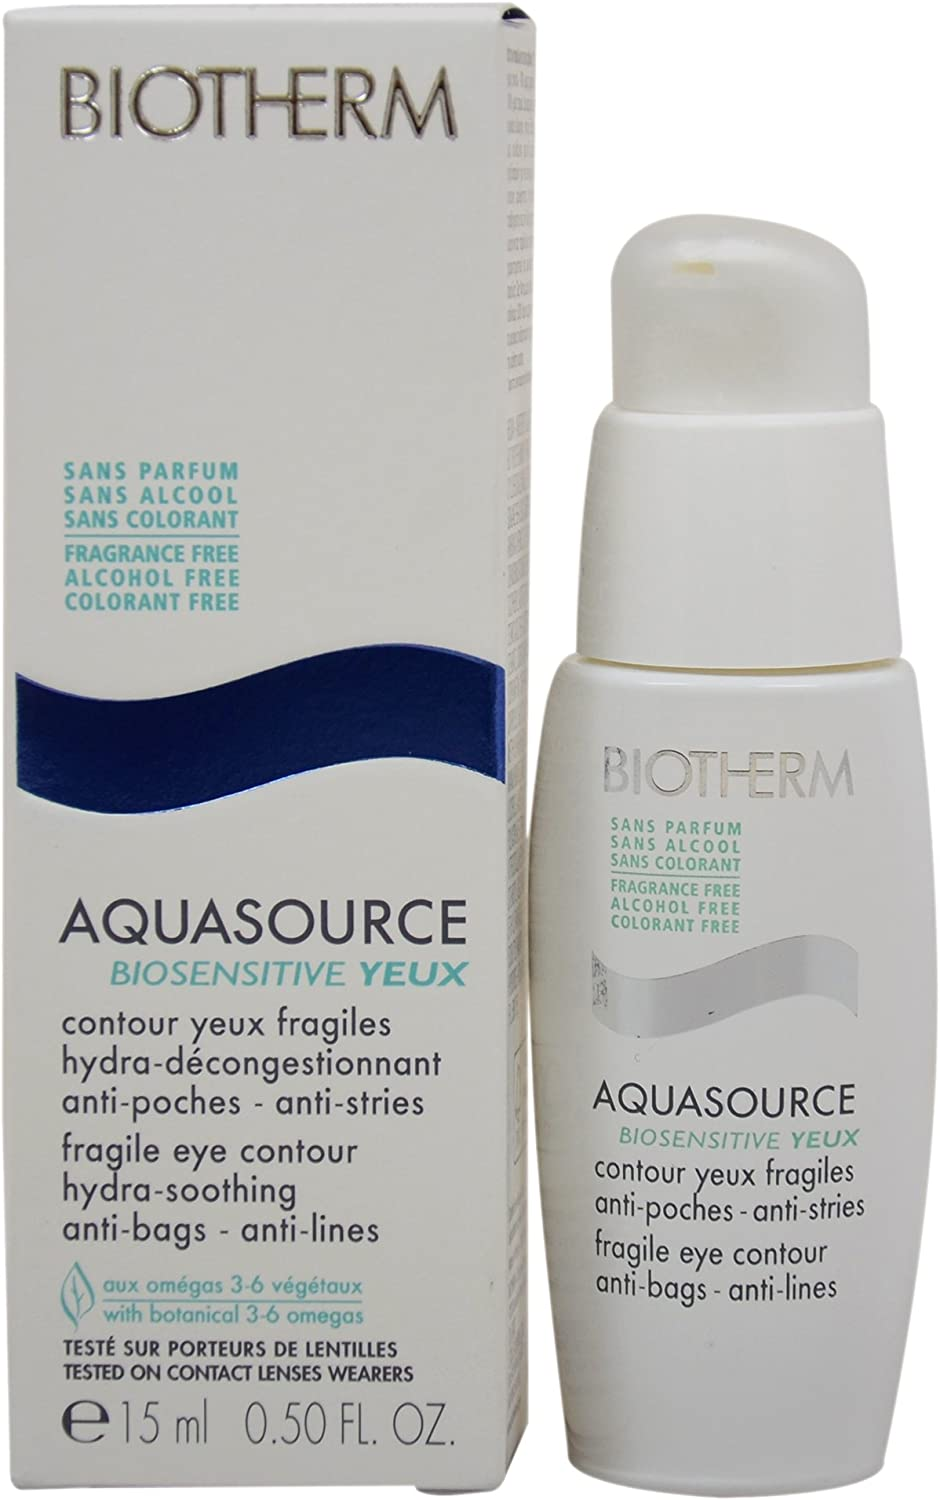 biotherm aquasource biosensitive yeux